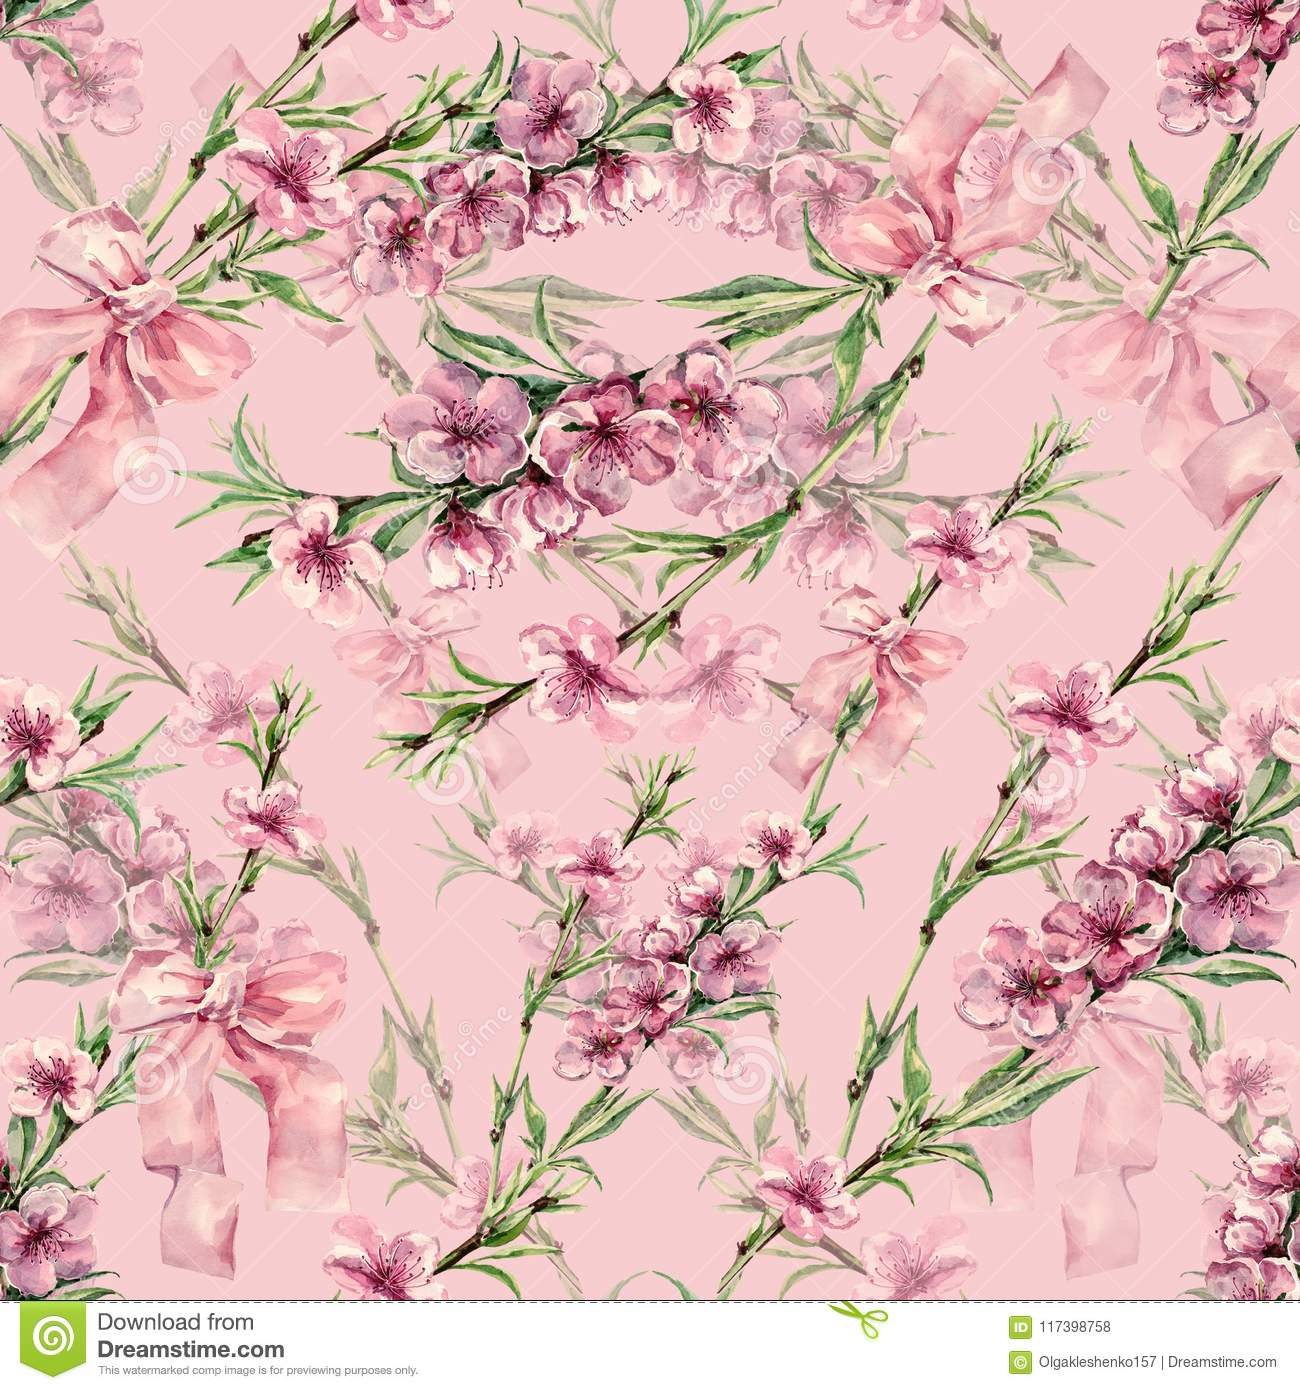 watercolor peach flowers with ribbon seamless pattern on a pink background stock illustration illustration of fabric bouquet 117398758 https www dreamstime com watercolor peach flowers ribbon seamless pattern pink background handiwork design floral delicate illustration image117398758